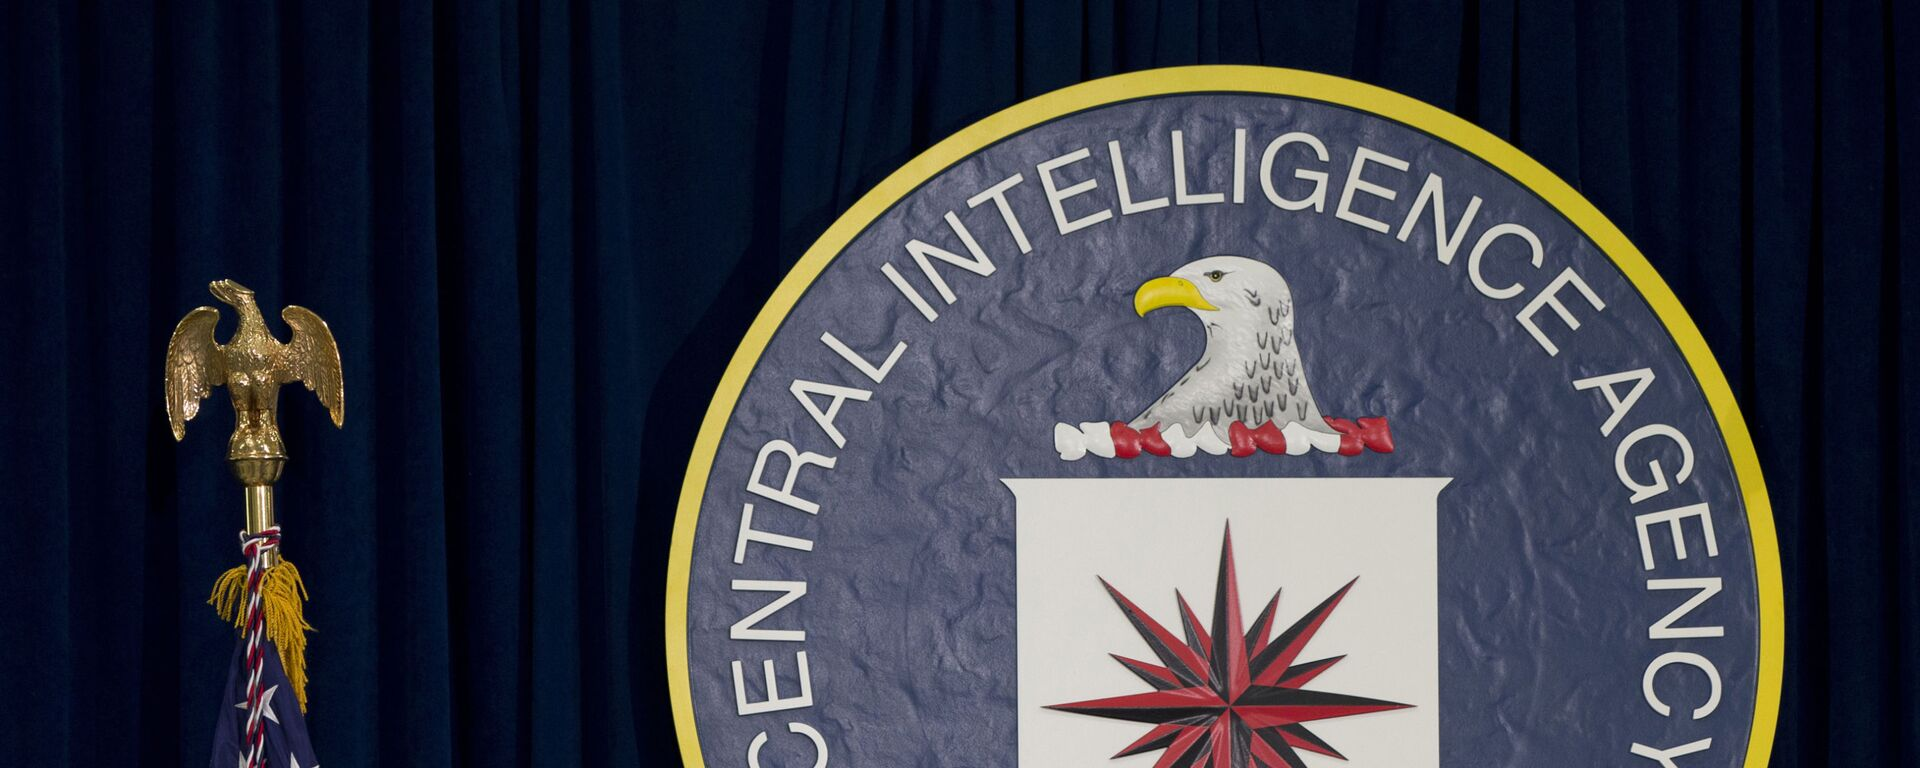 This April 13, 2016 file photo shows the seal of the Central Intelligence Agency at CIA headquarters in Langley, Va. James Pars, a CIA intelligence officer, says his career was derailed after he complained that his boss at a base in a conflict zone repeatedly ordered personnel to travel through dangerous areas on non-essential trips to shop and buy food - Sputnik International, 1920, 30.07.2021